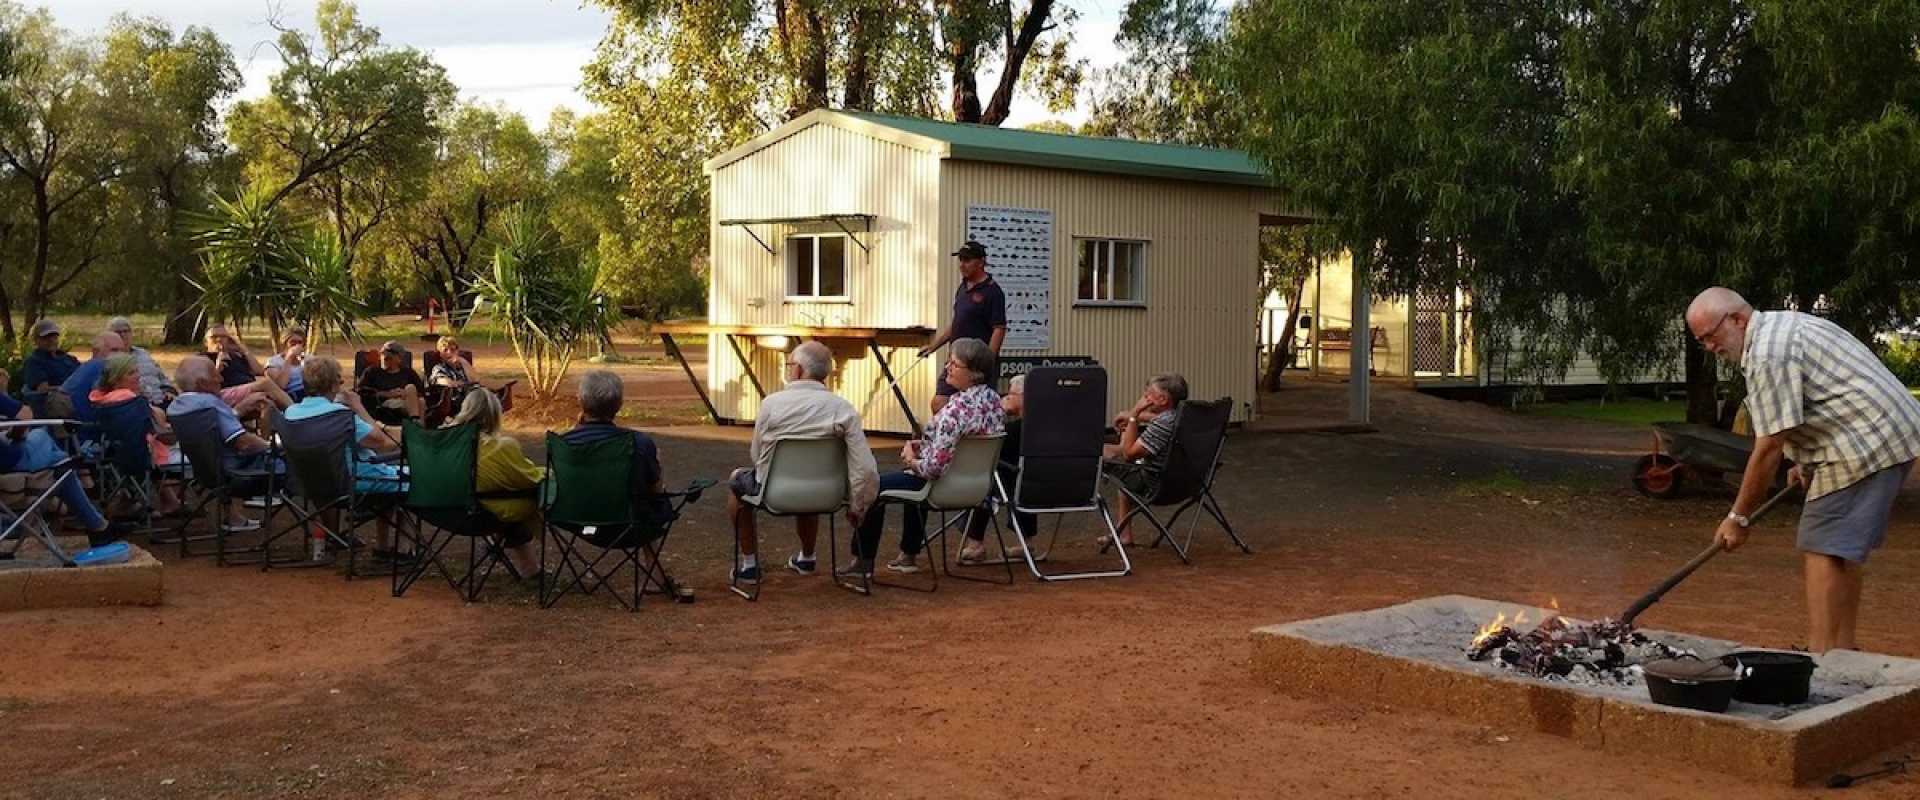 Kui Parks, Charleville Bush Caravan Park NSW, Happy Hour